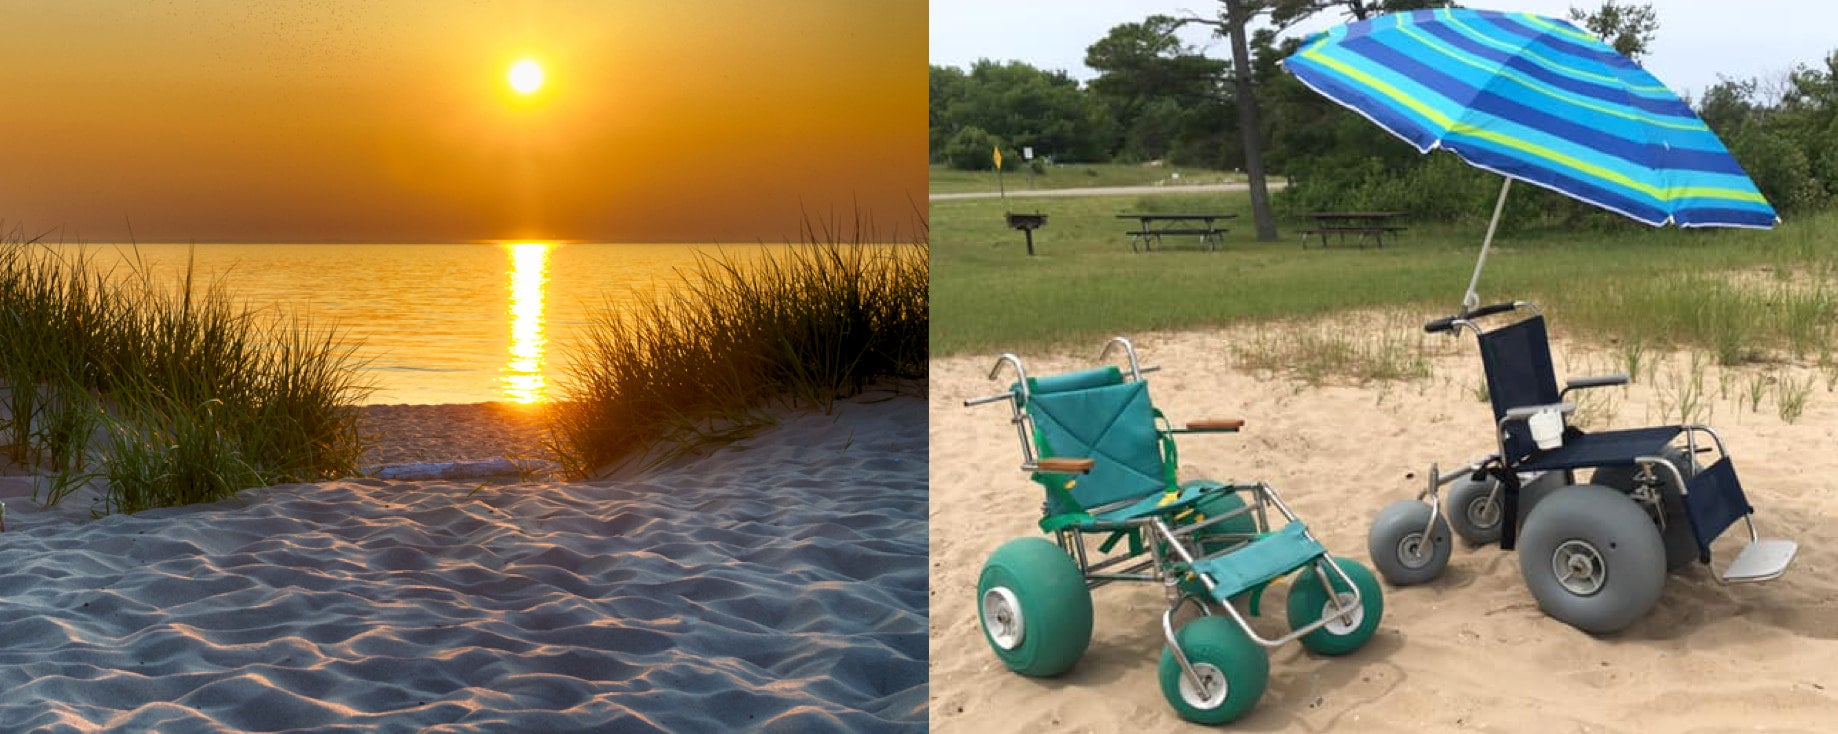 a sunset on the beach next to two beach wheelchairs